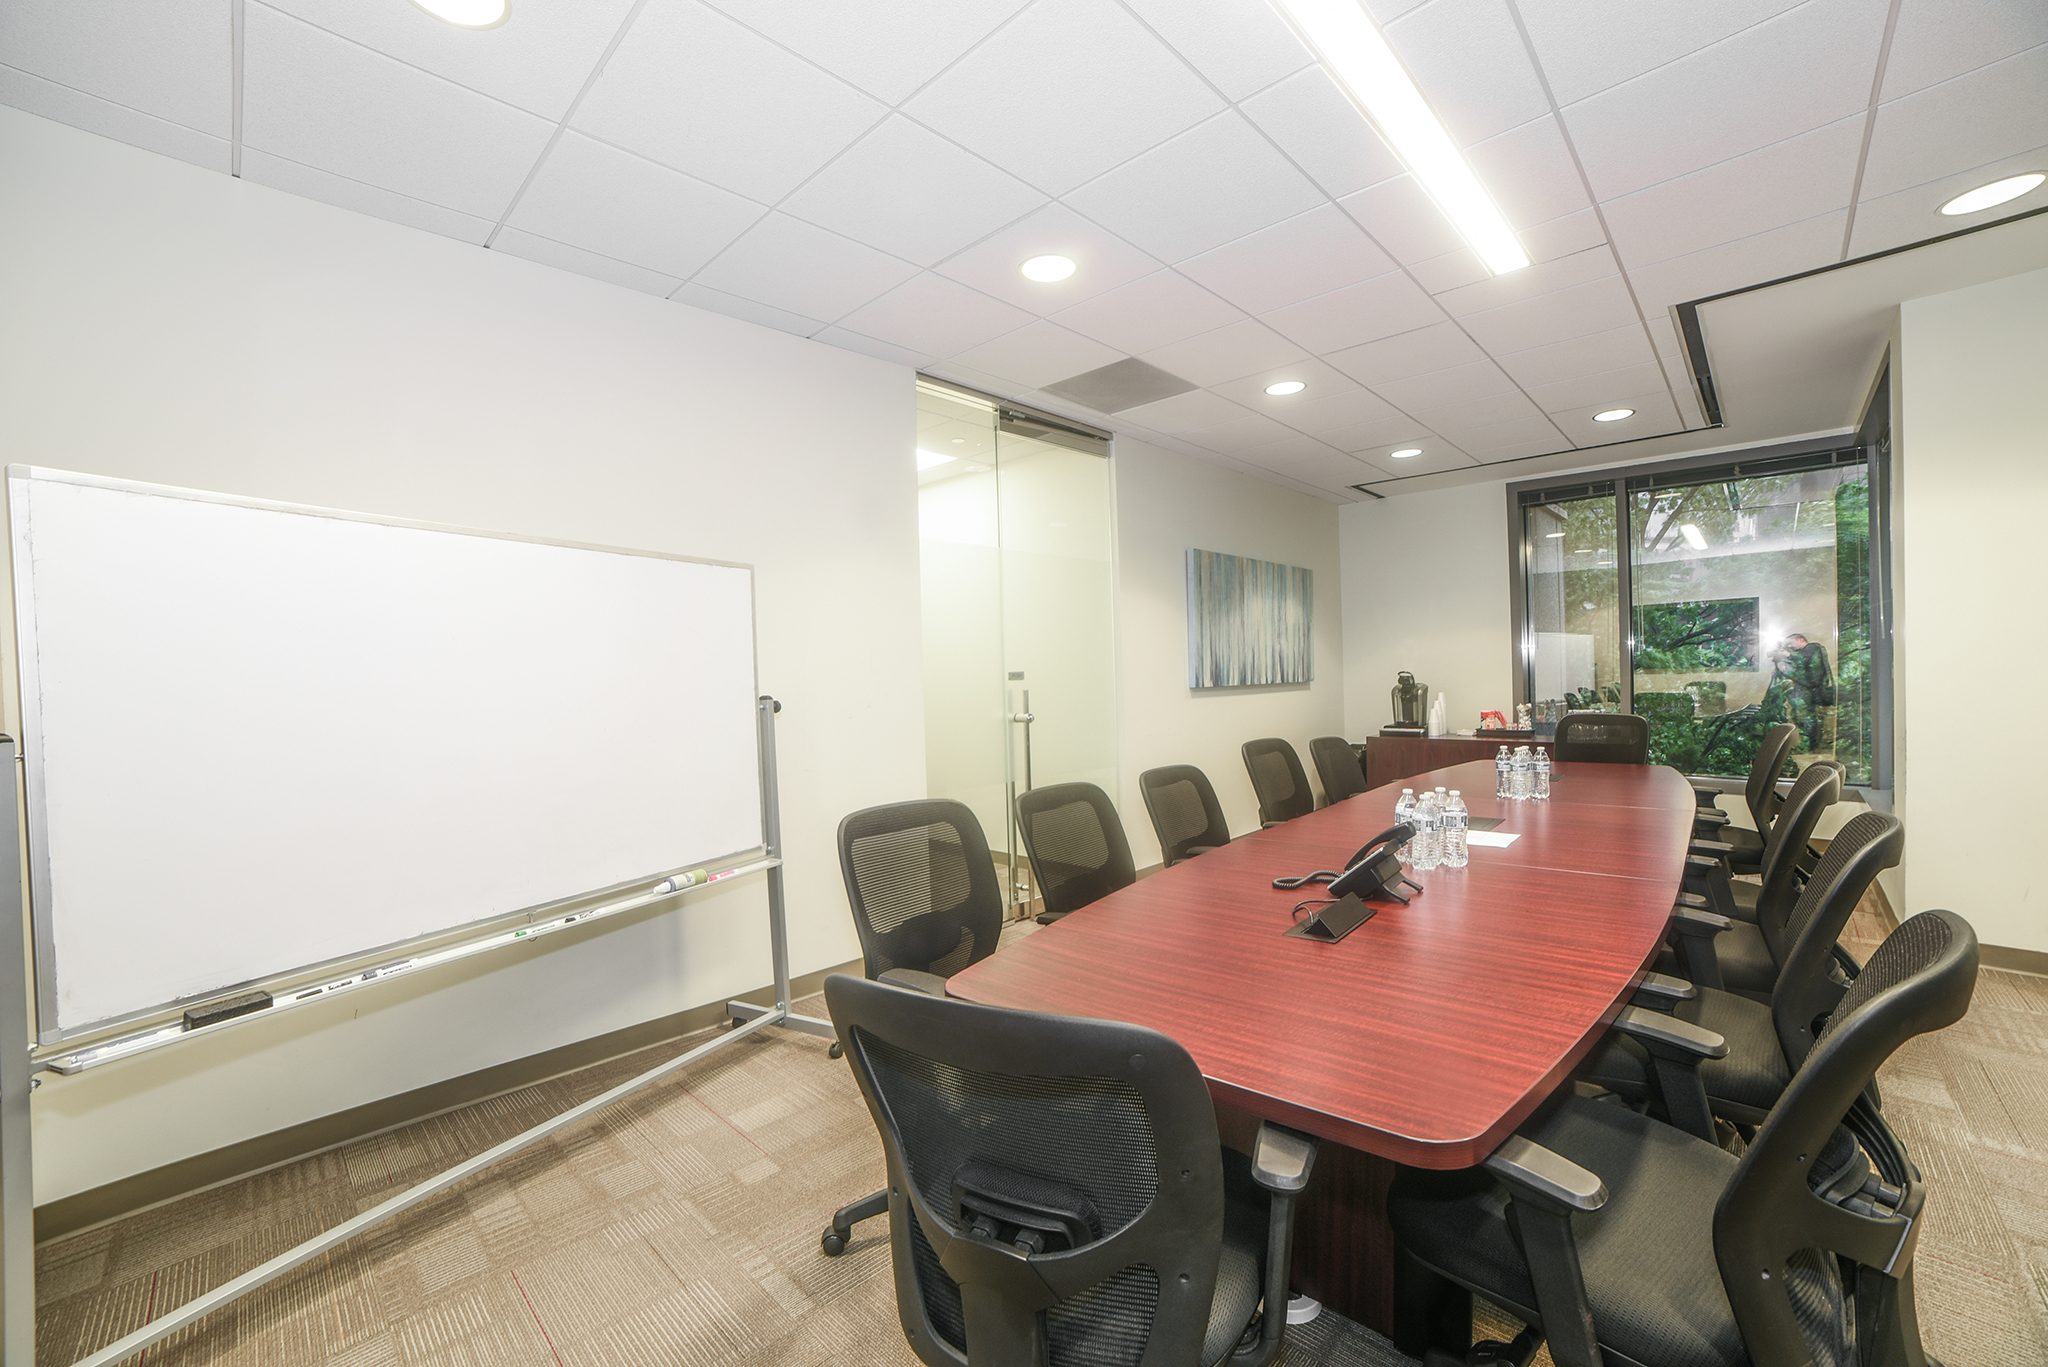 48 Person Production Corporate Meeting & Presentation Room